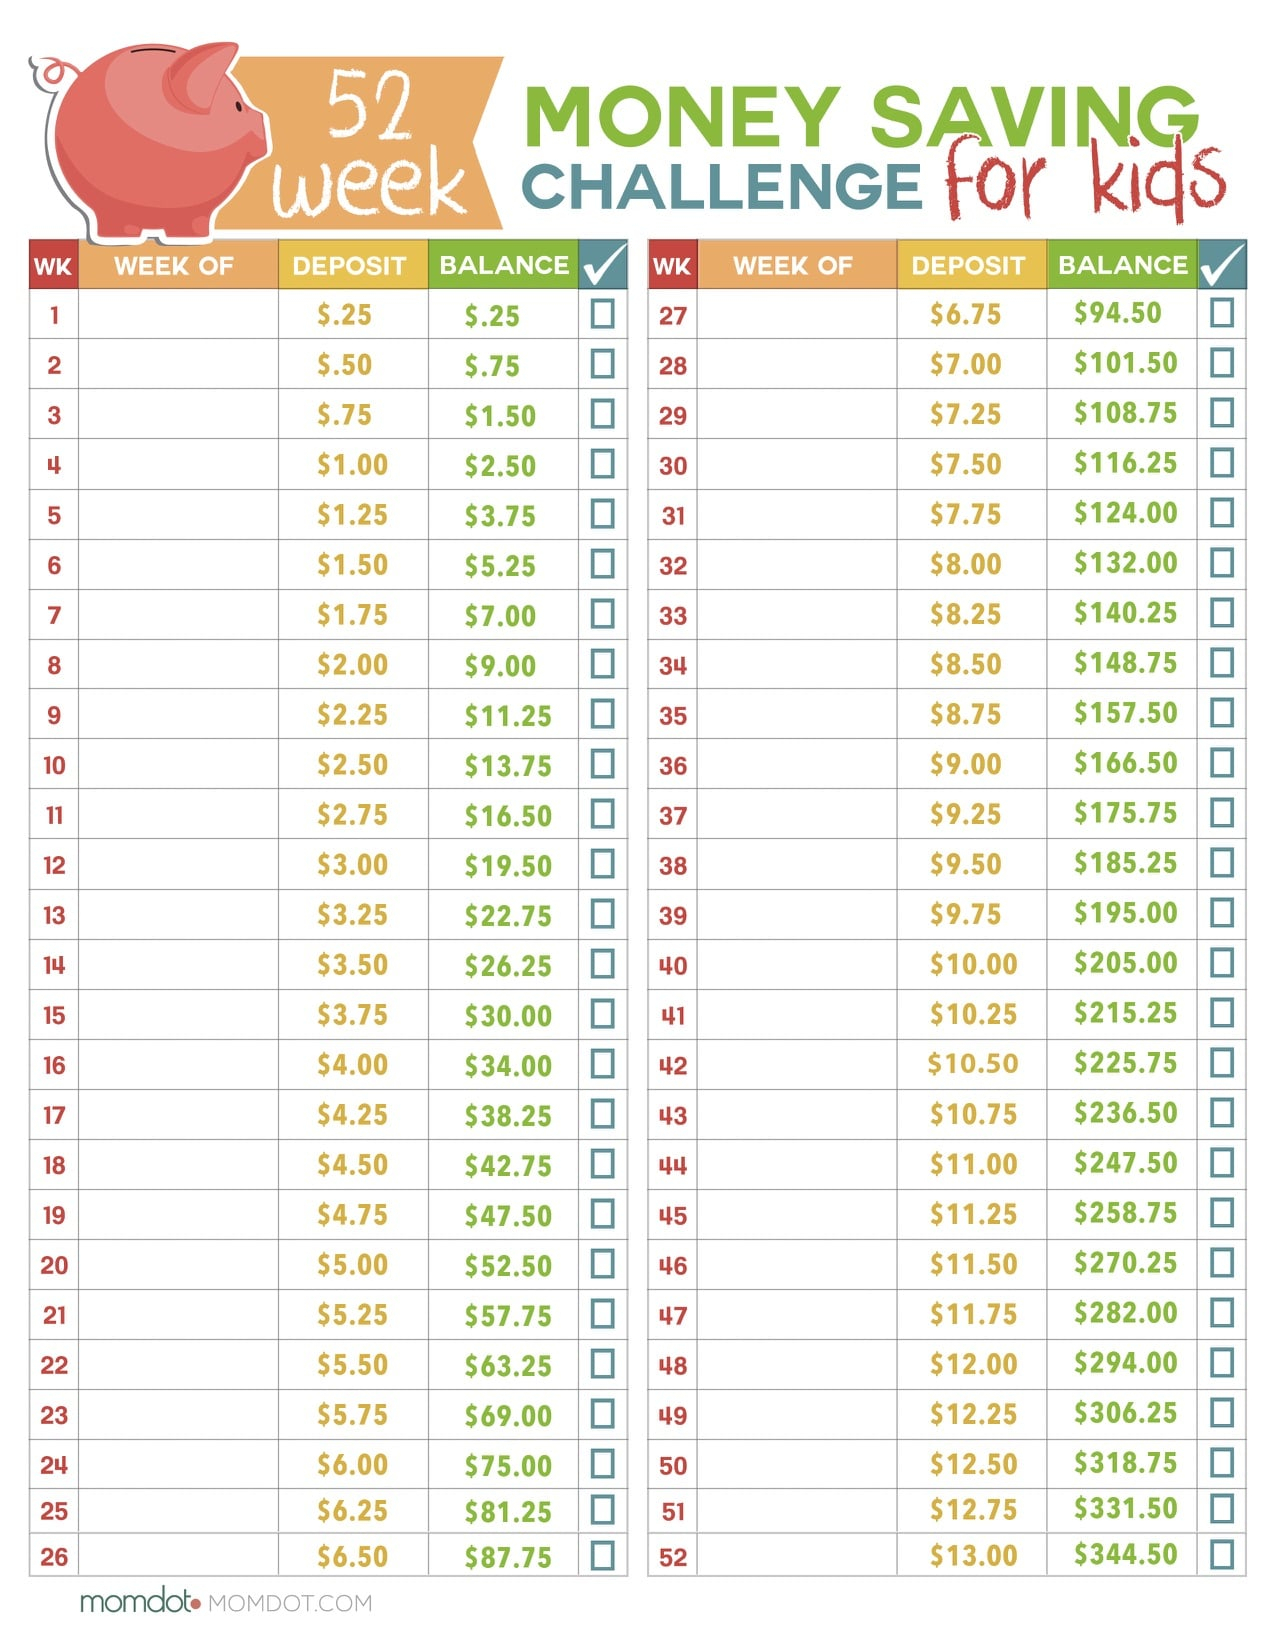 Children's Allowance Spreadsheet Inside 52 Week Money Challenge For Kids  Money Saving Printable